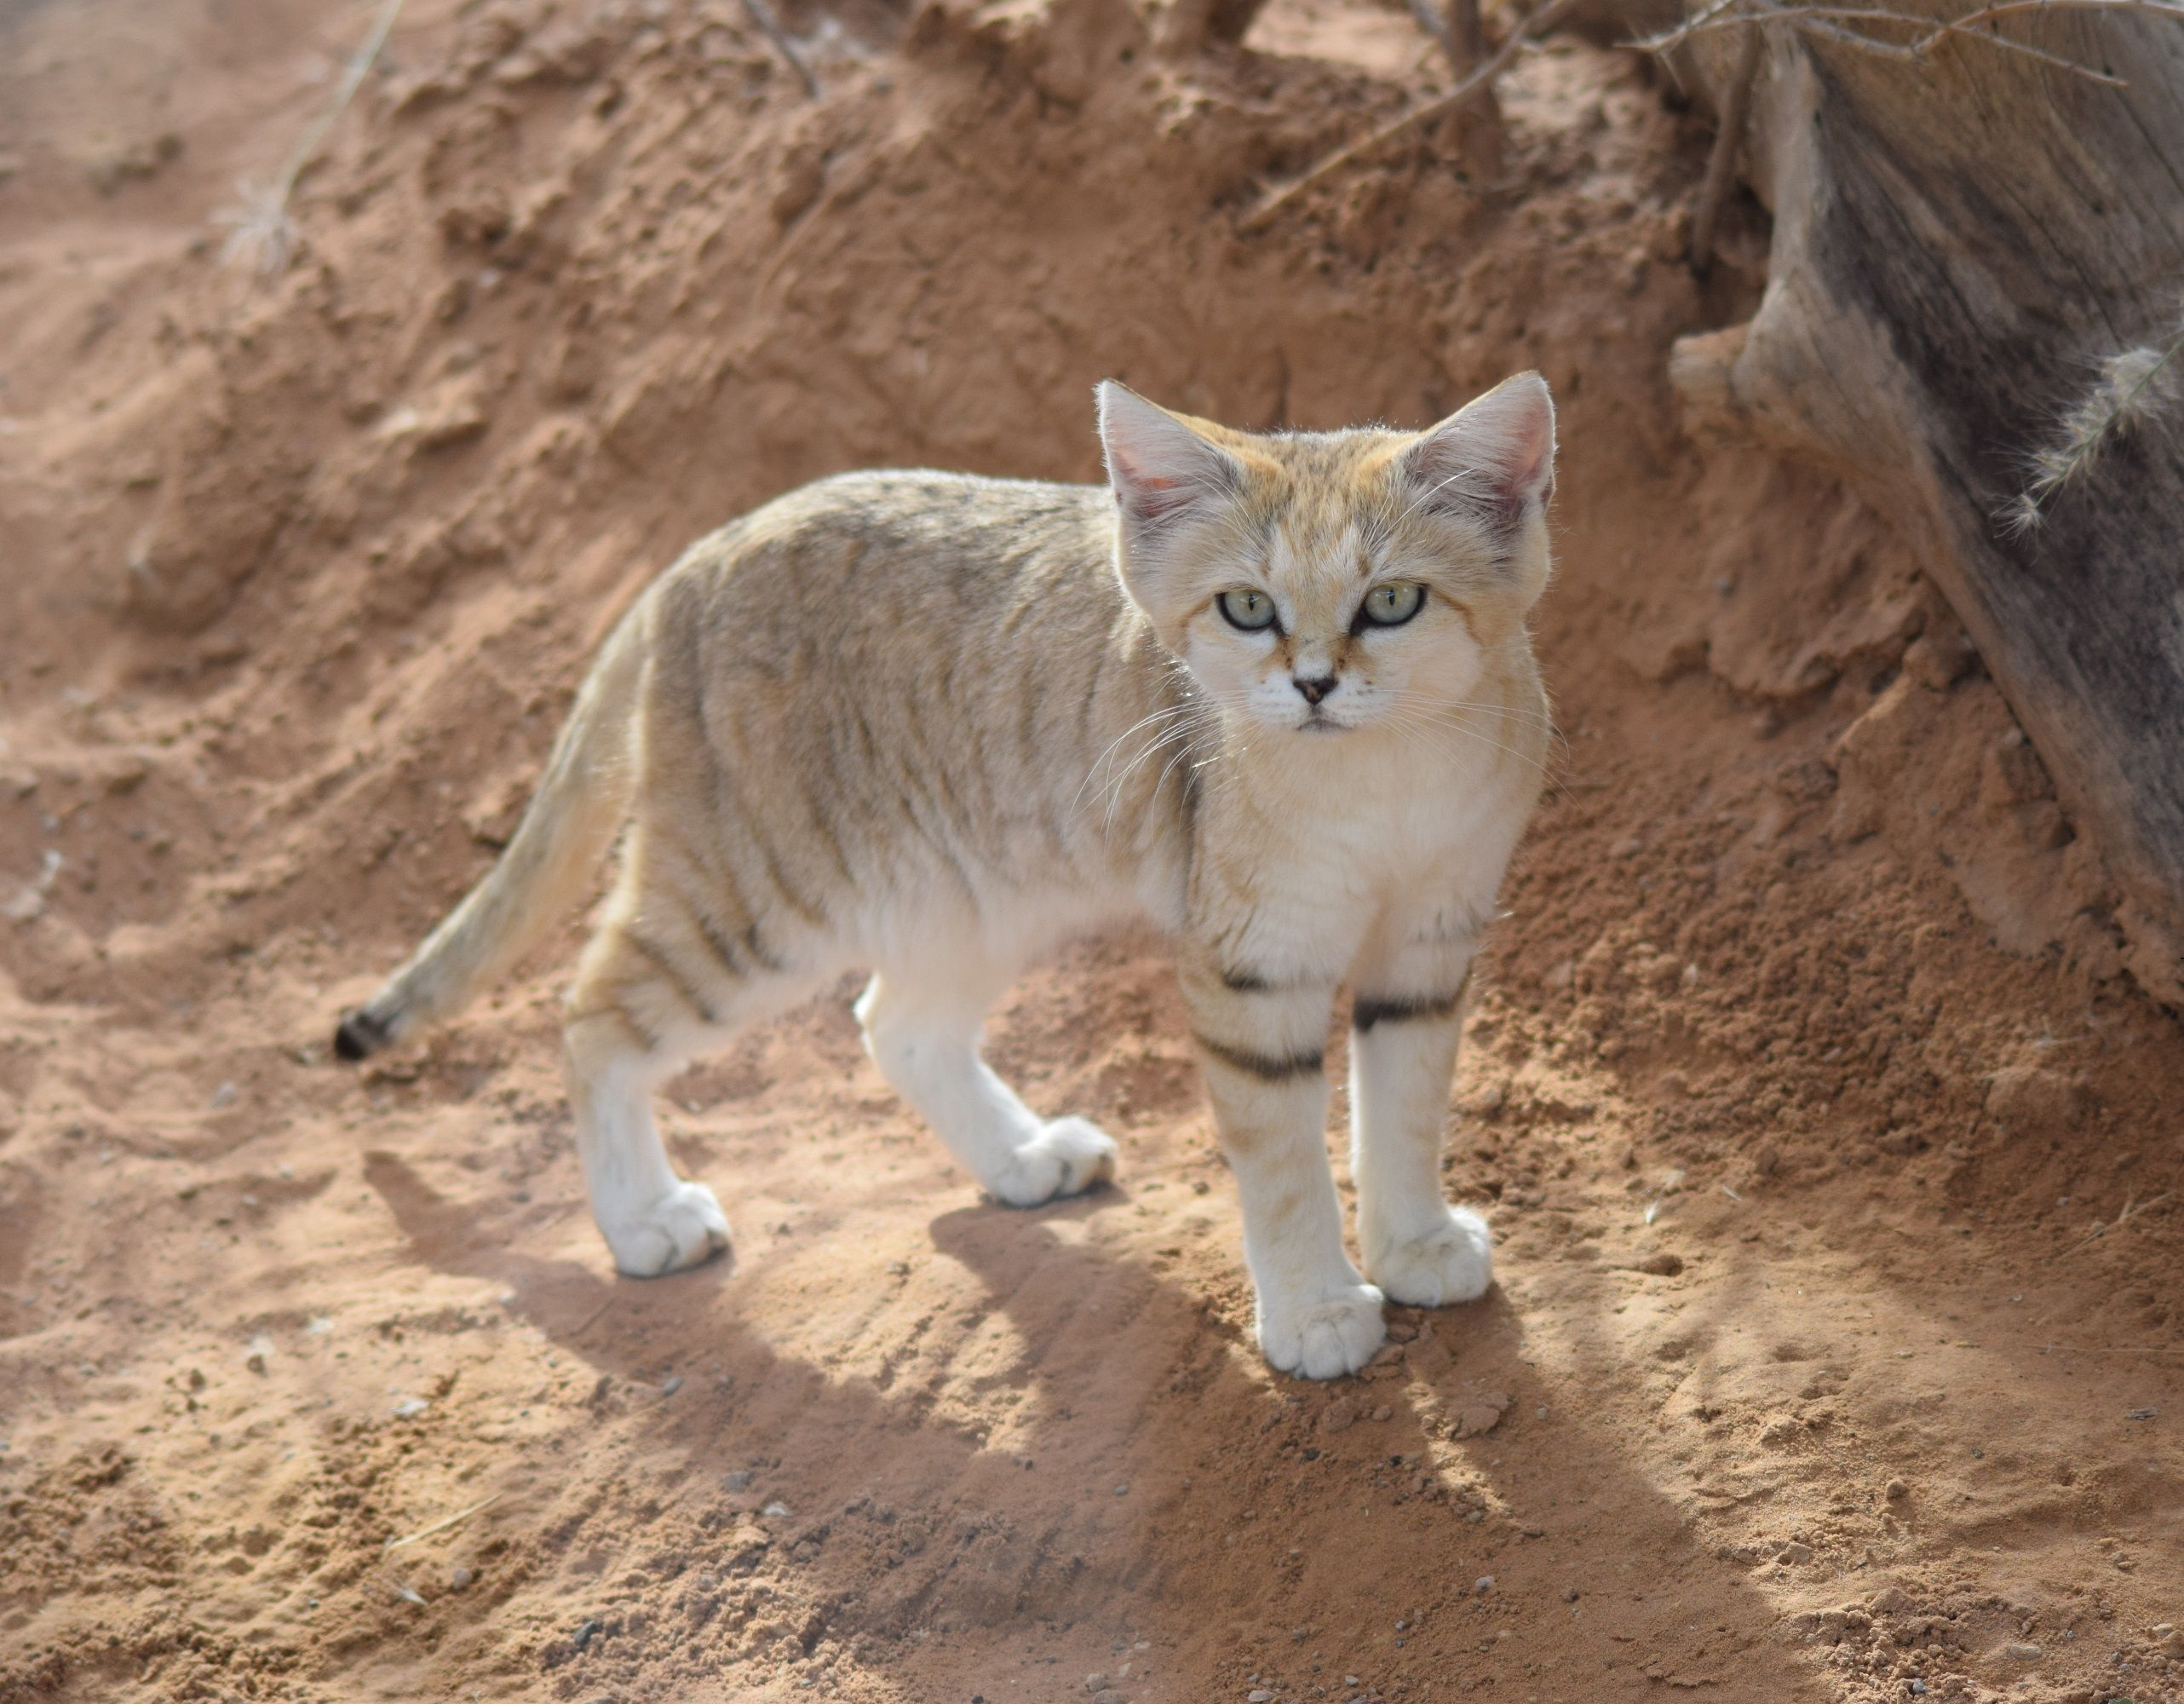 Arabian Sand Cat Rare animals, Endangered species